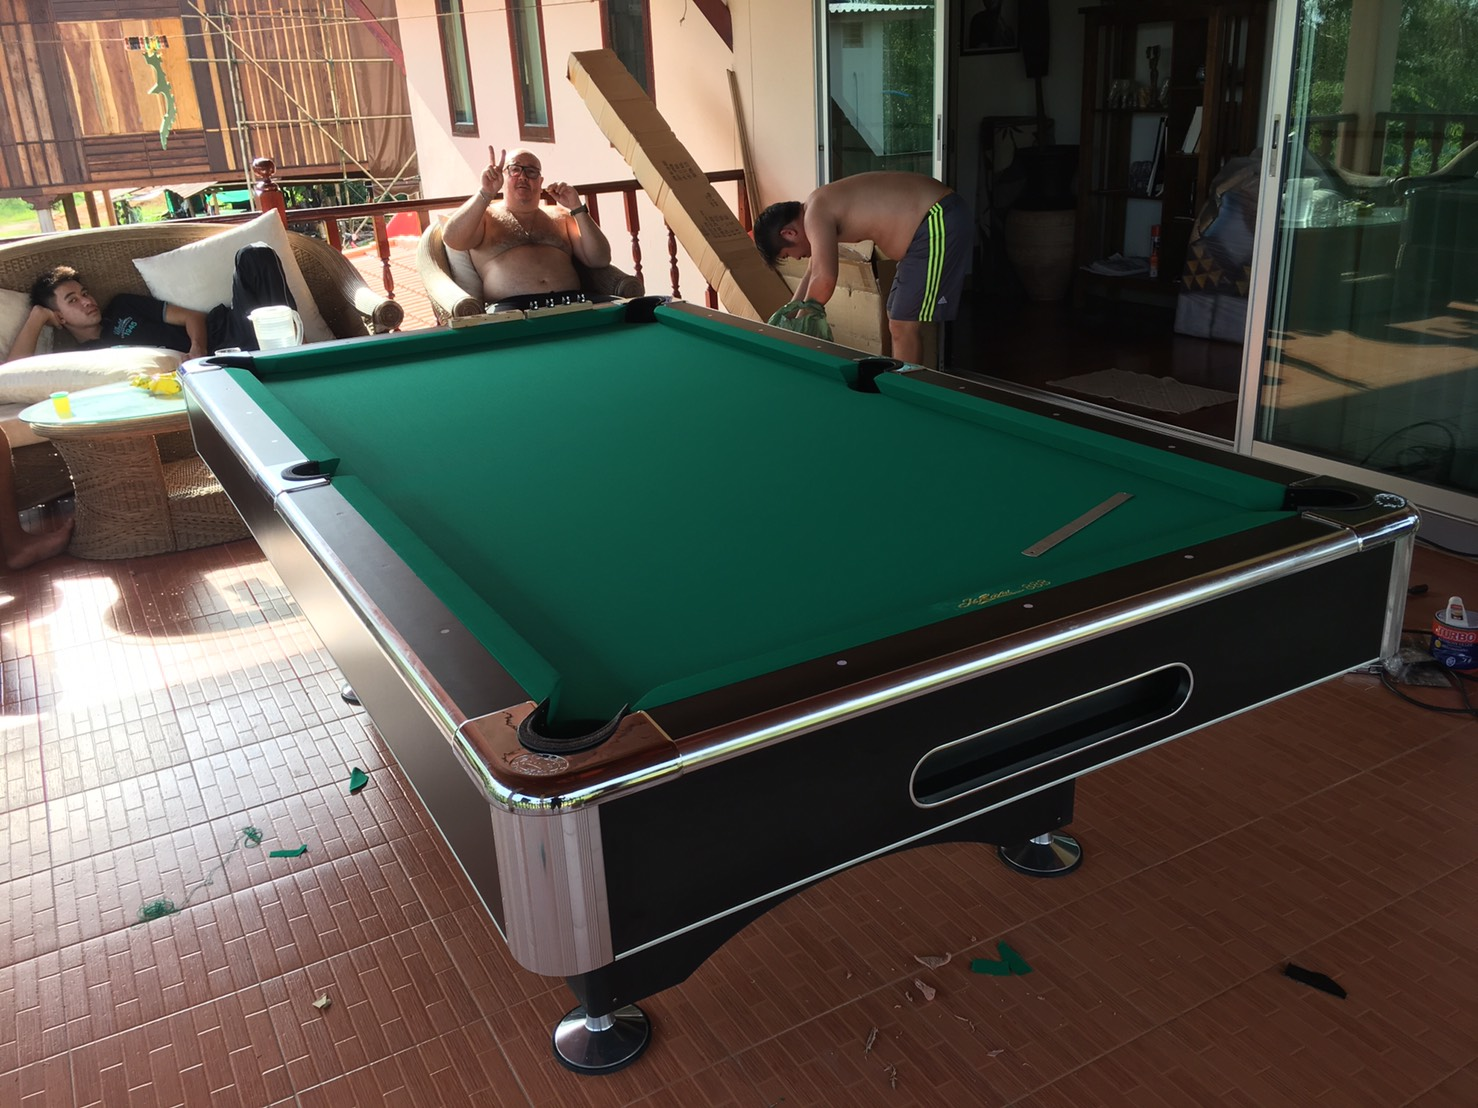 Pool Kaufen Thailand Buy Thailand Pool Table Pool Cues Snooker Cues Accessory In Bangkok